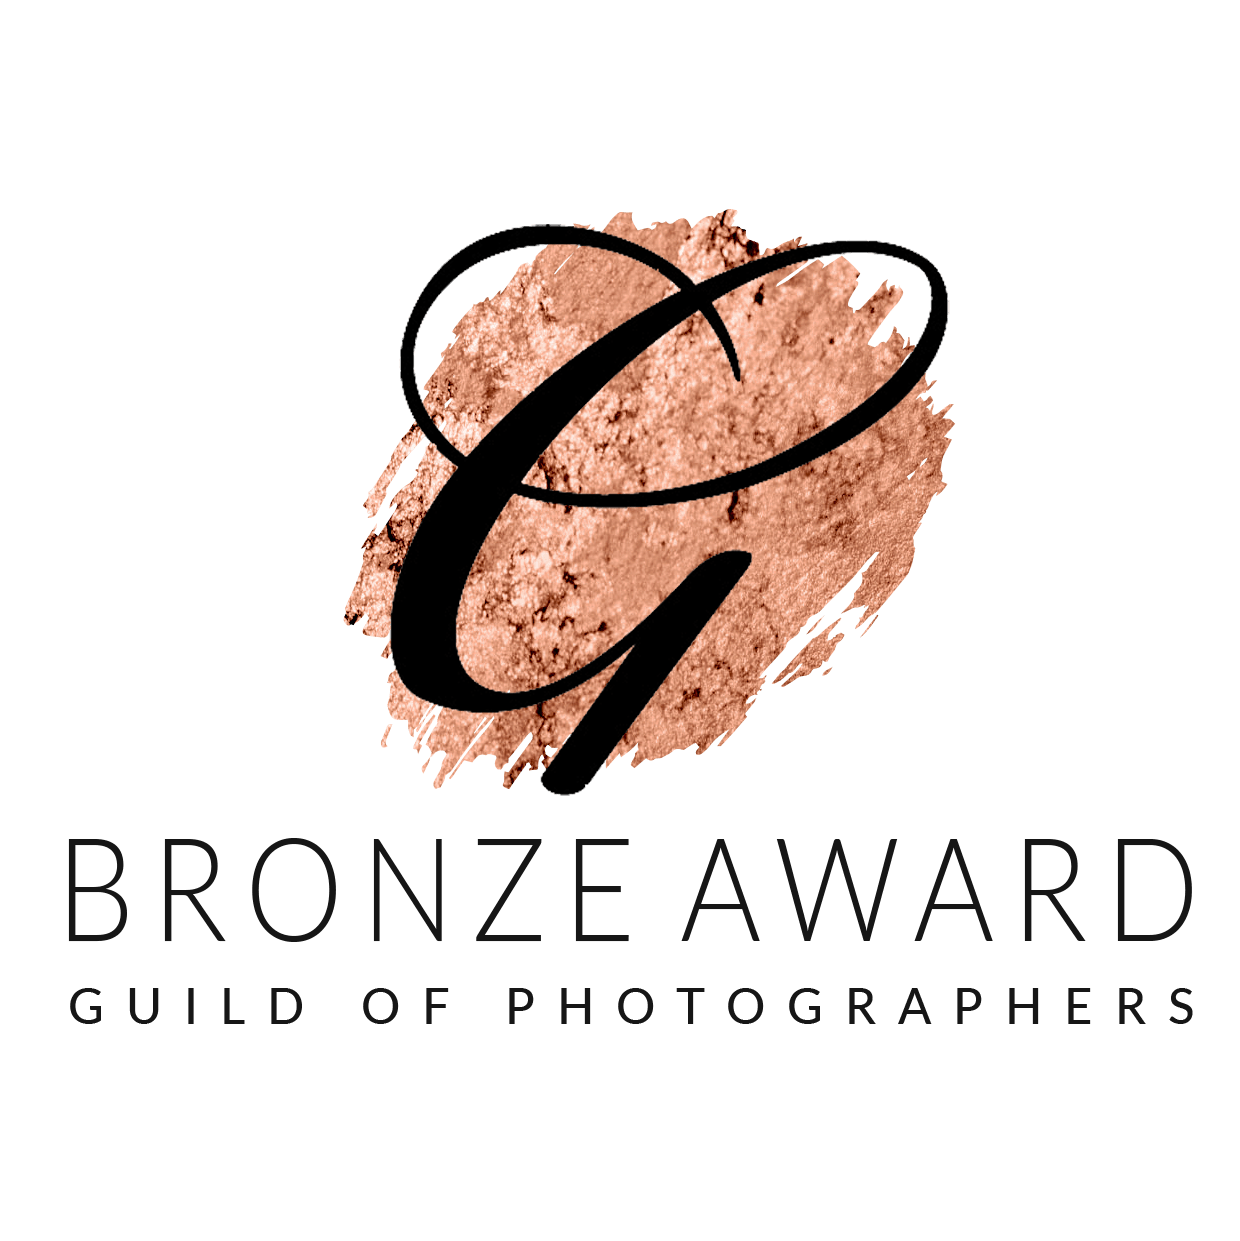 the guild of photographers bronze award logo